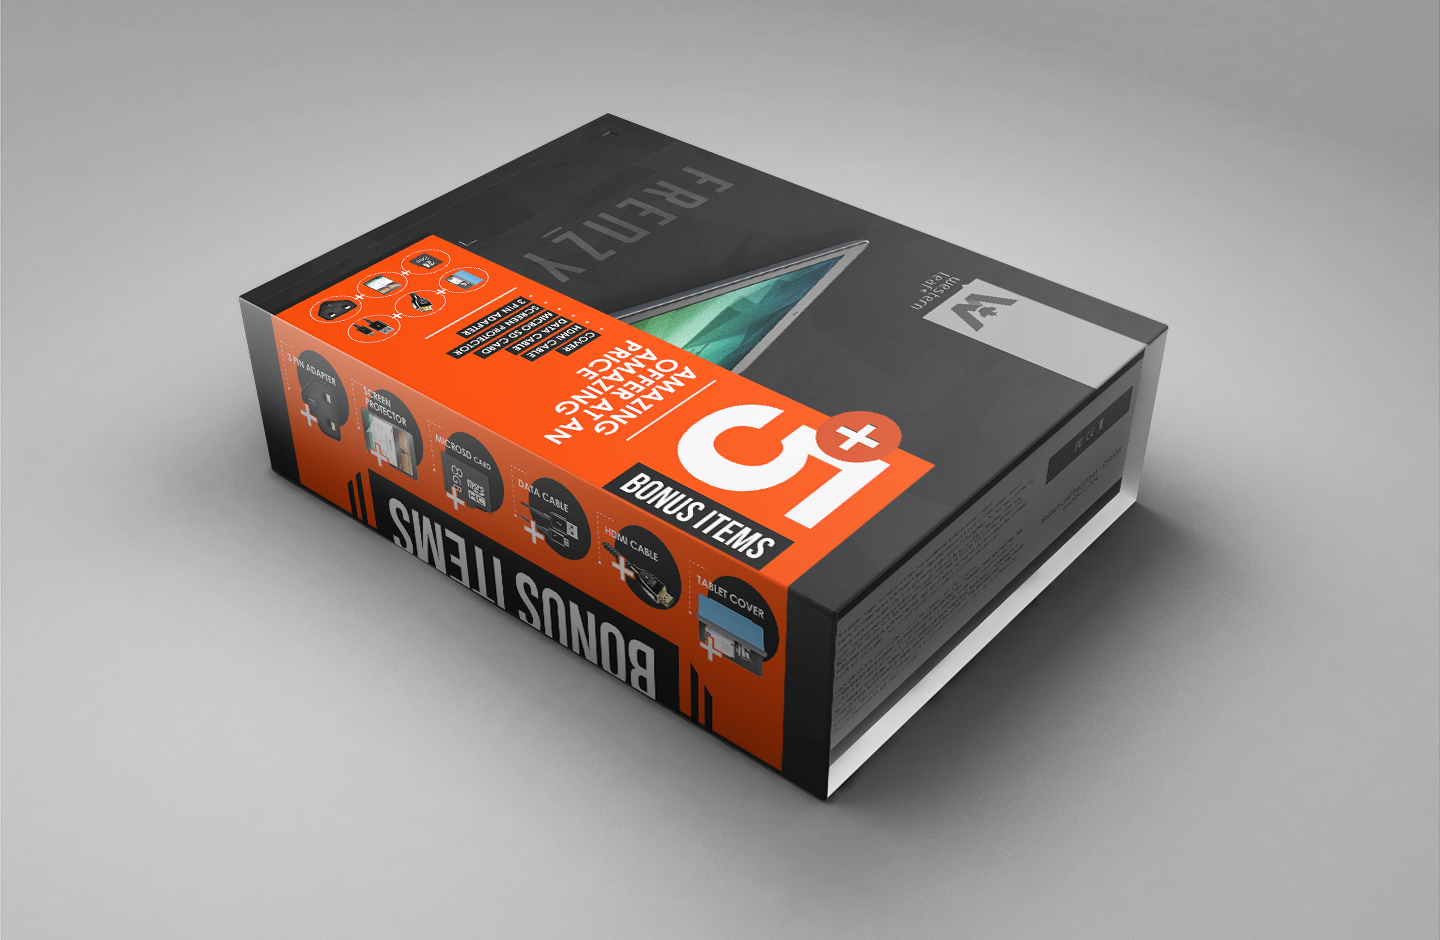 product packaging box design